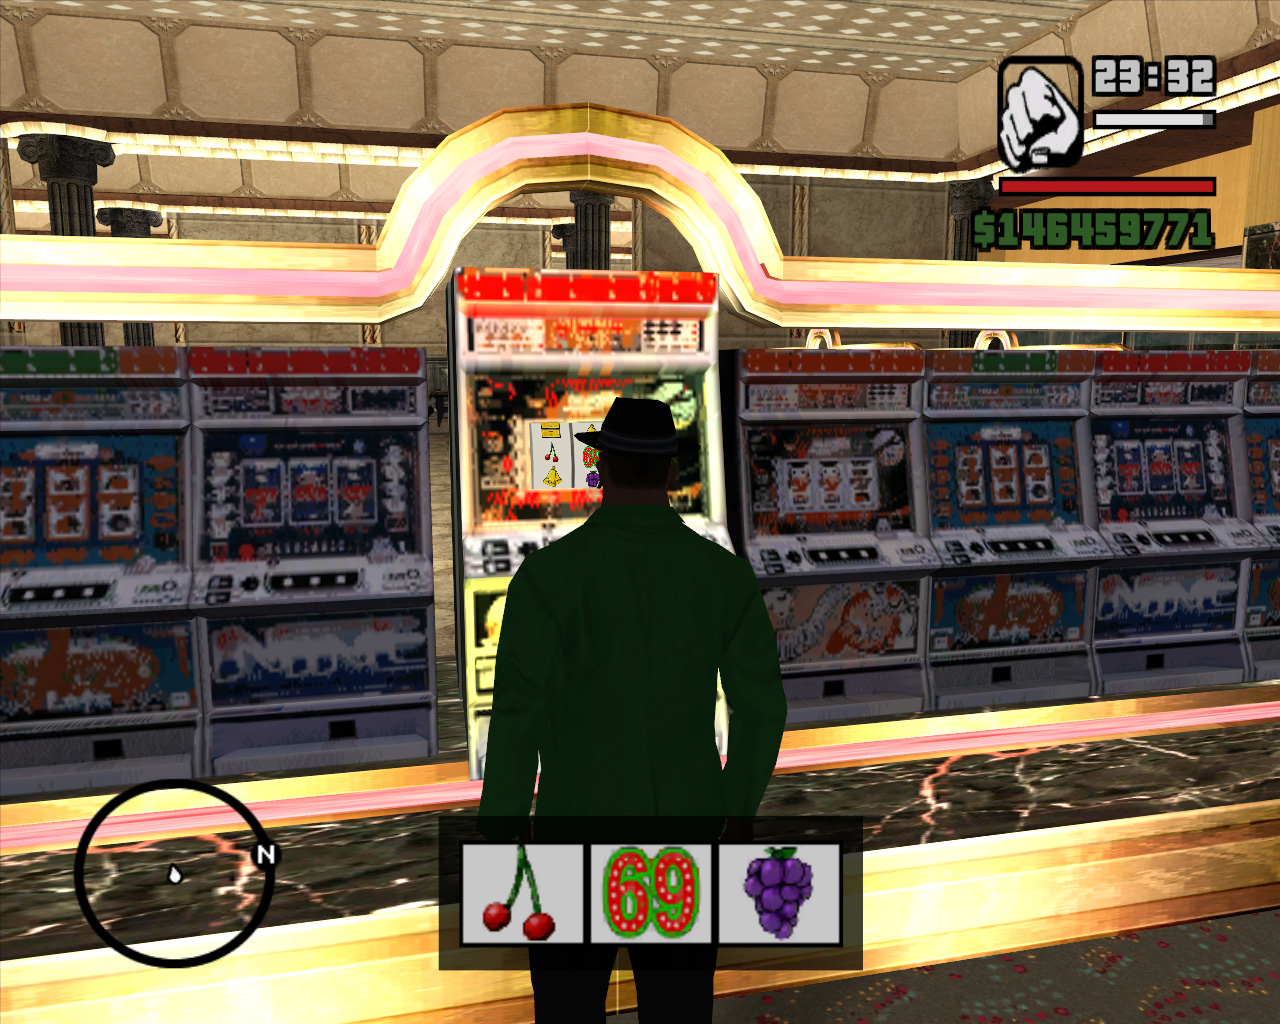 http://vignette2.wikia.nocookie.net/gtawiki/images/2/25/Slotmachine-GTASA.jpg/revision/latest?cb=20100314194509